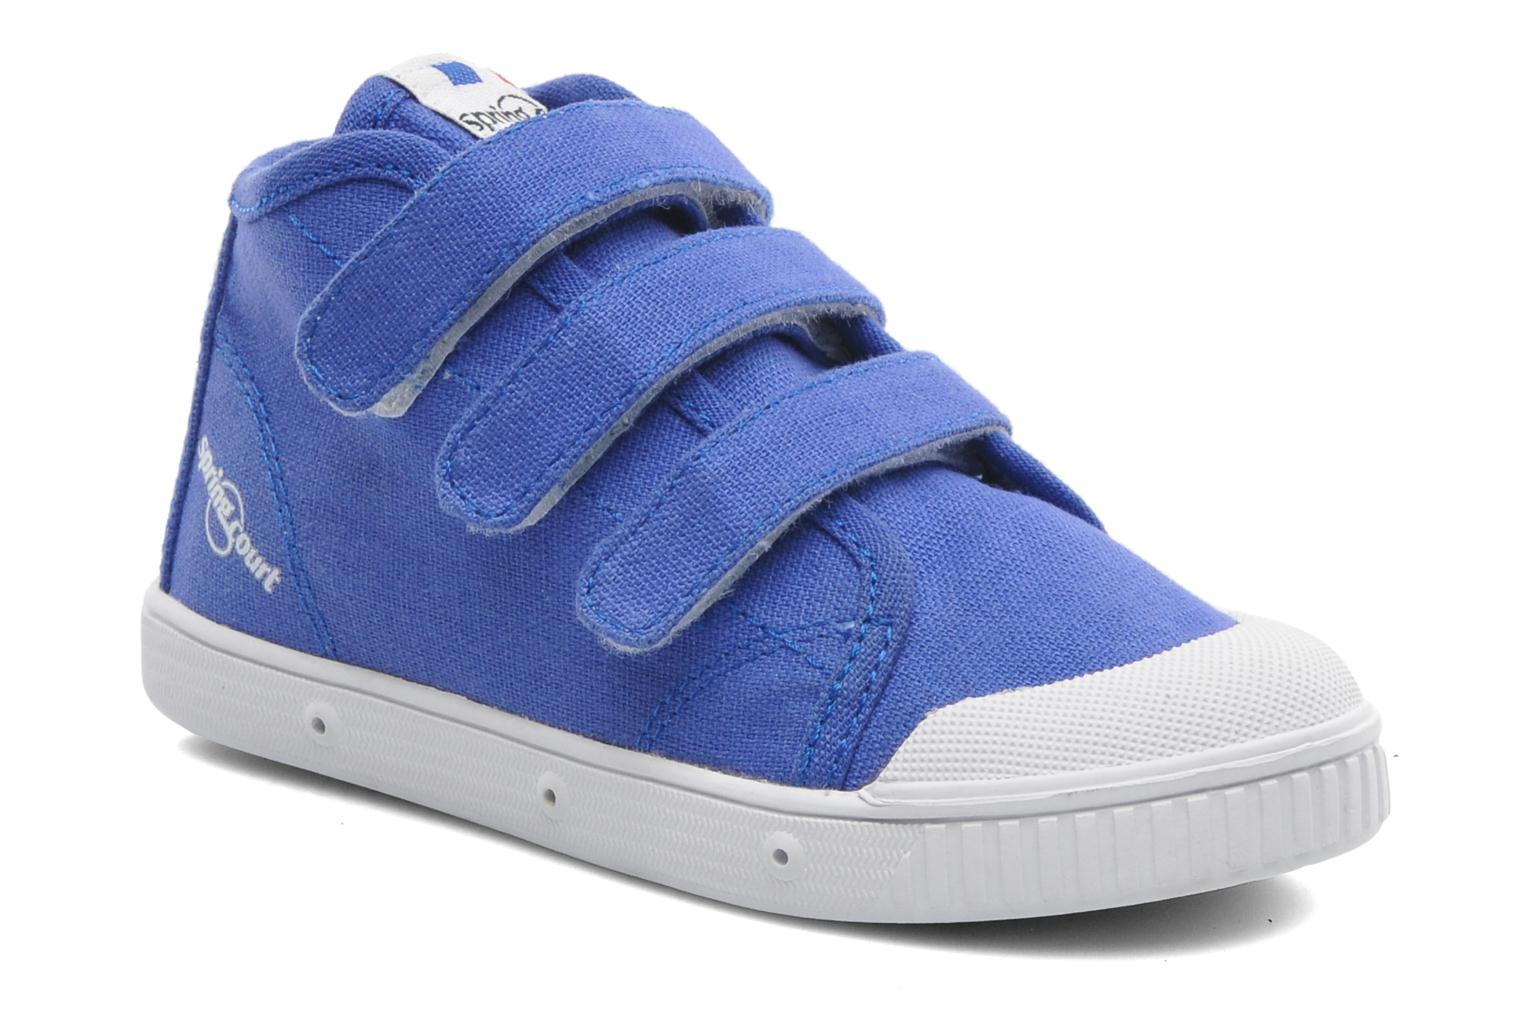 Sneakers BE1V CVS by Spring Court